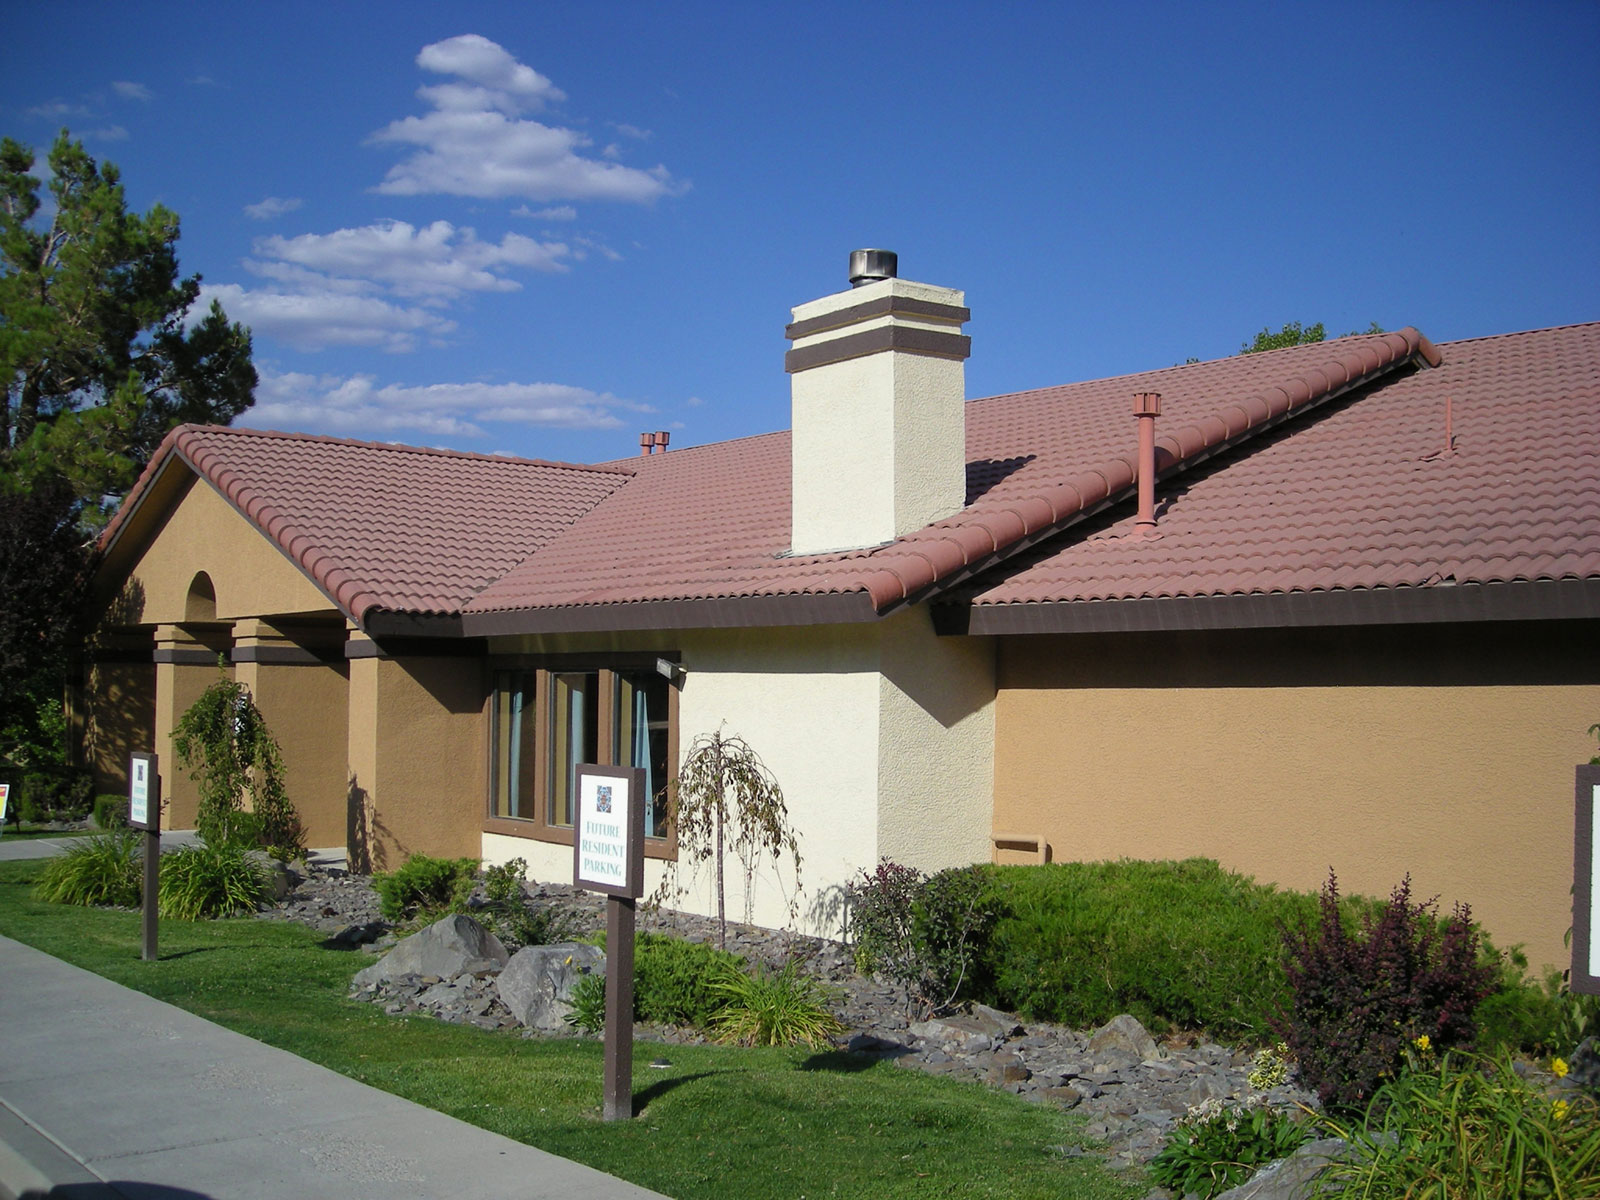 Apartments in Reno, NV for rent near a lake.